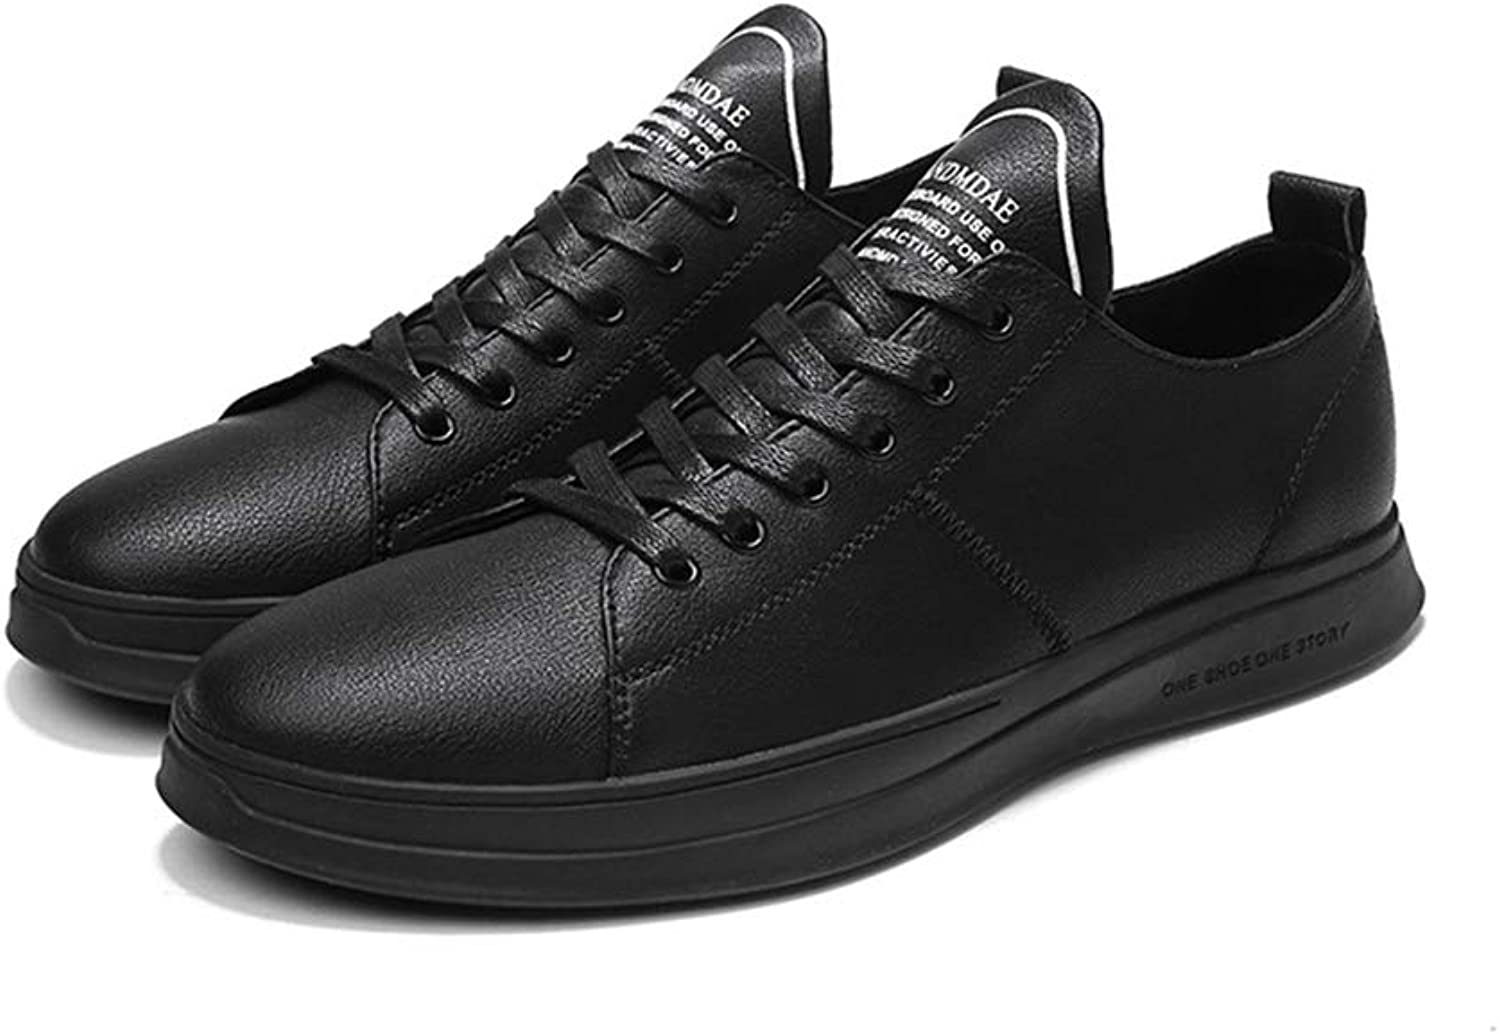 Men's shoes,Spring new Flat Deck shoe Casual Sneakers Road Cycling shoes Walking shoes,black,38